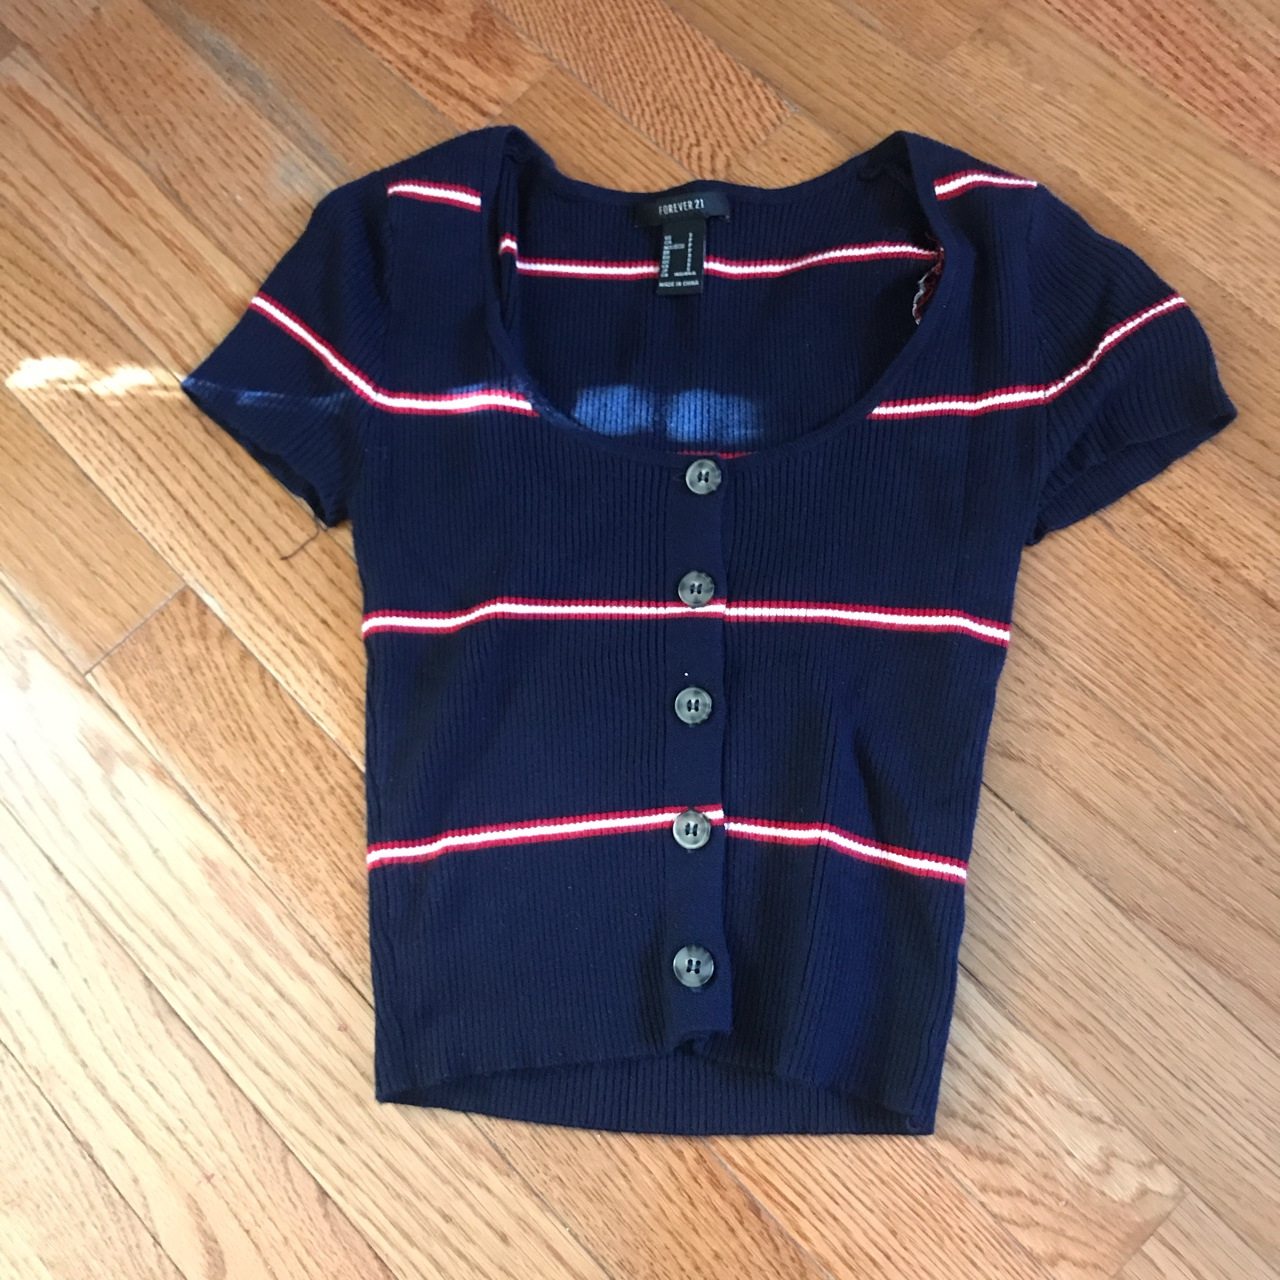 Product Image 1 - Cute striped button up crop